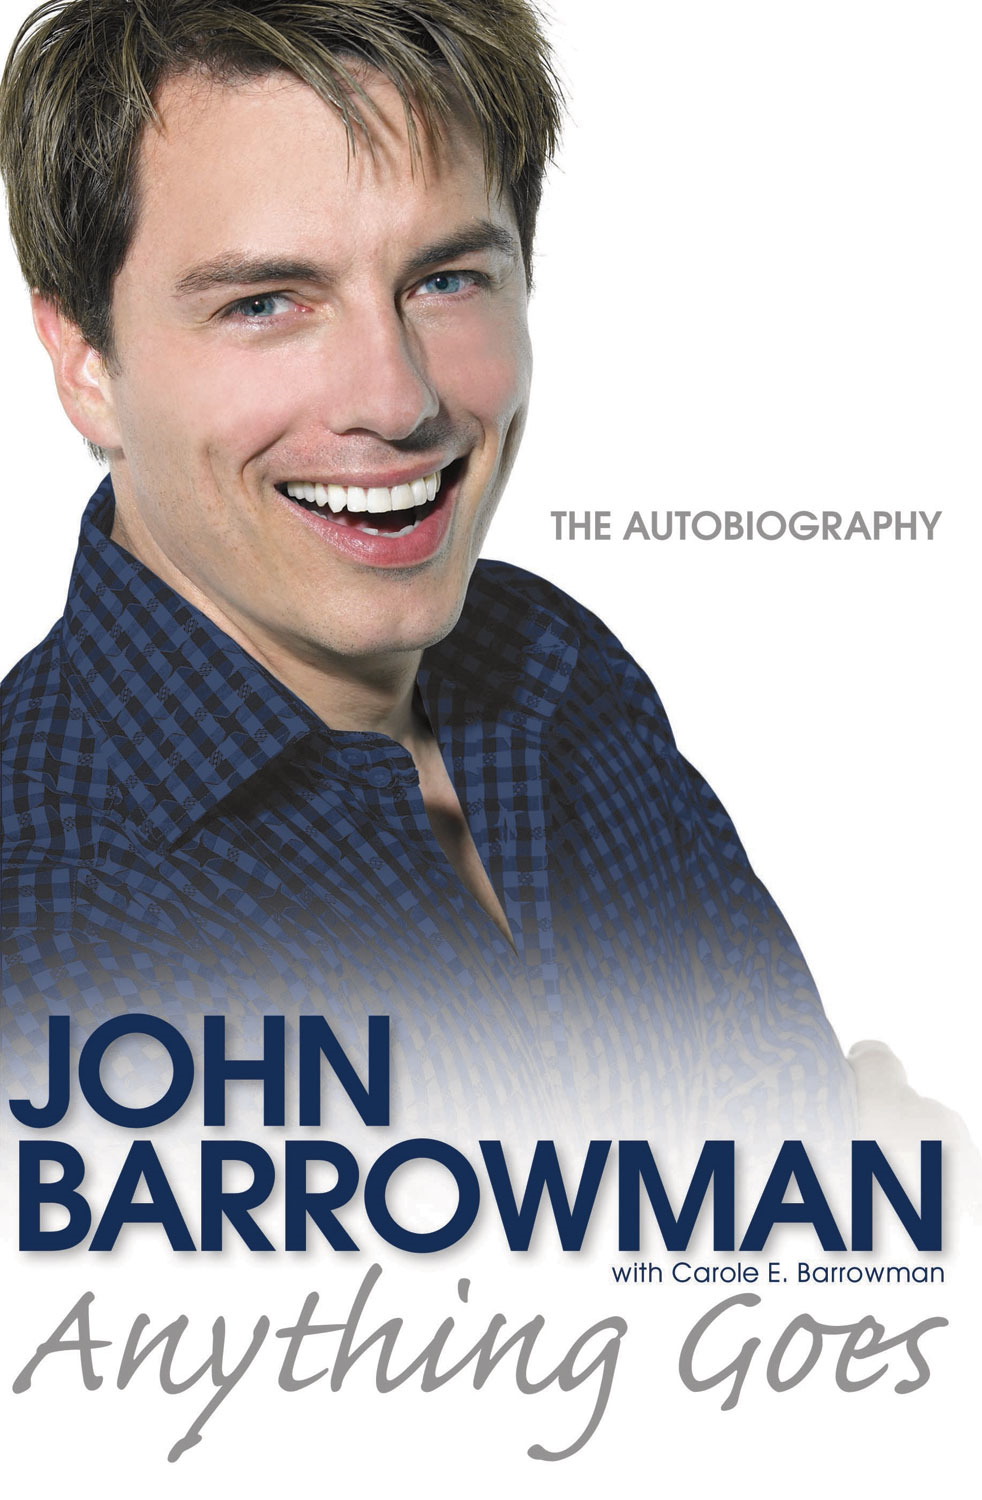 Anything Goes By: Carole E. Barrowman,John Barrowman